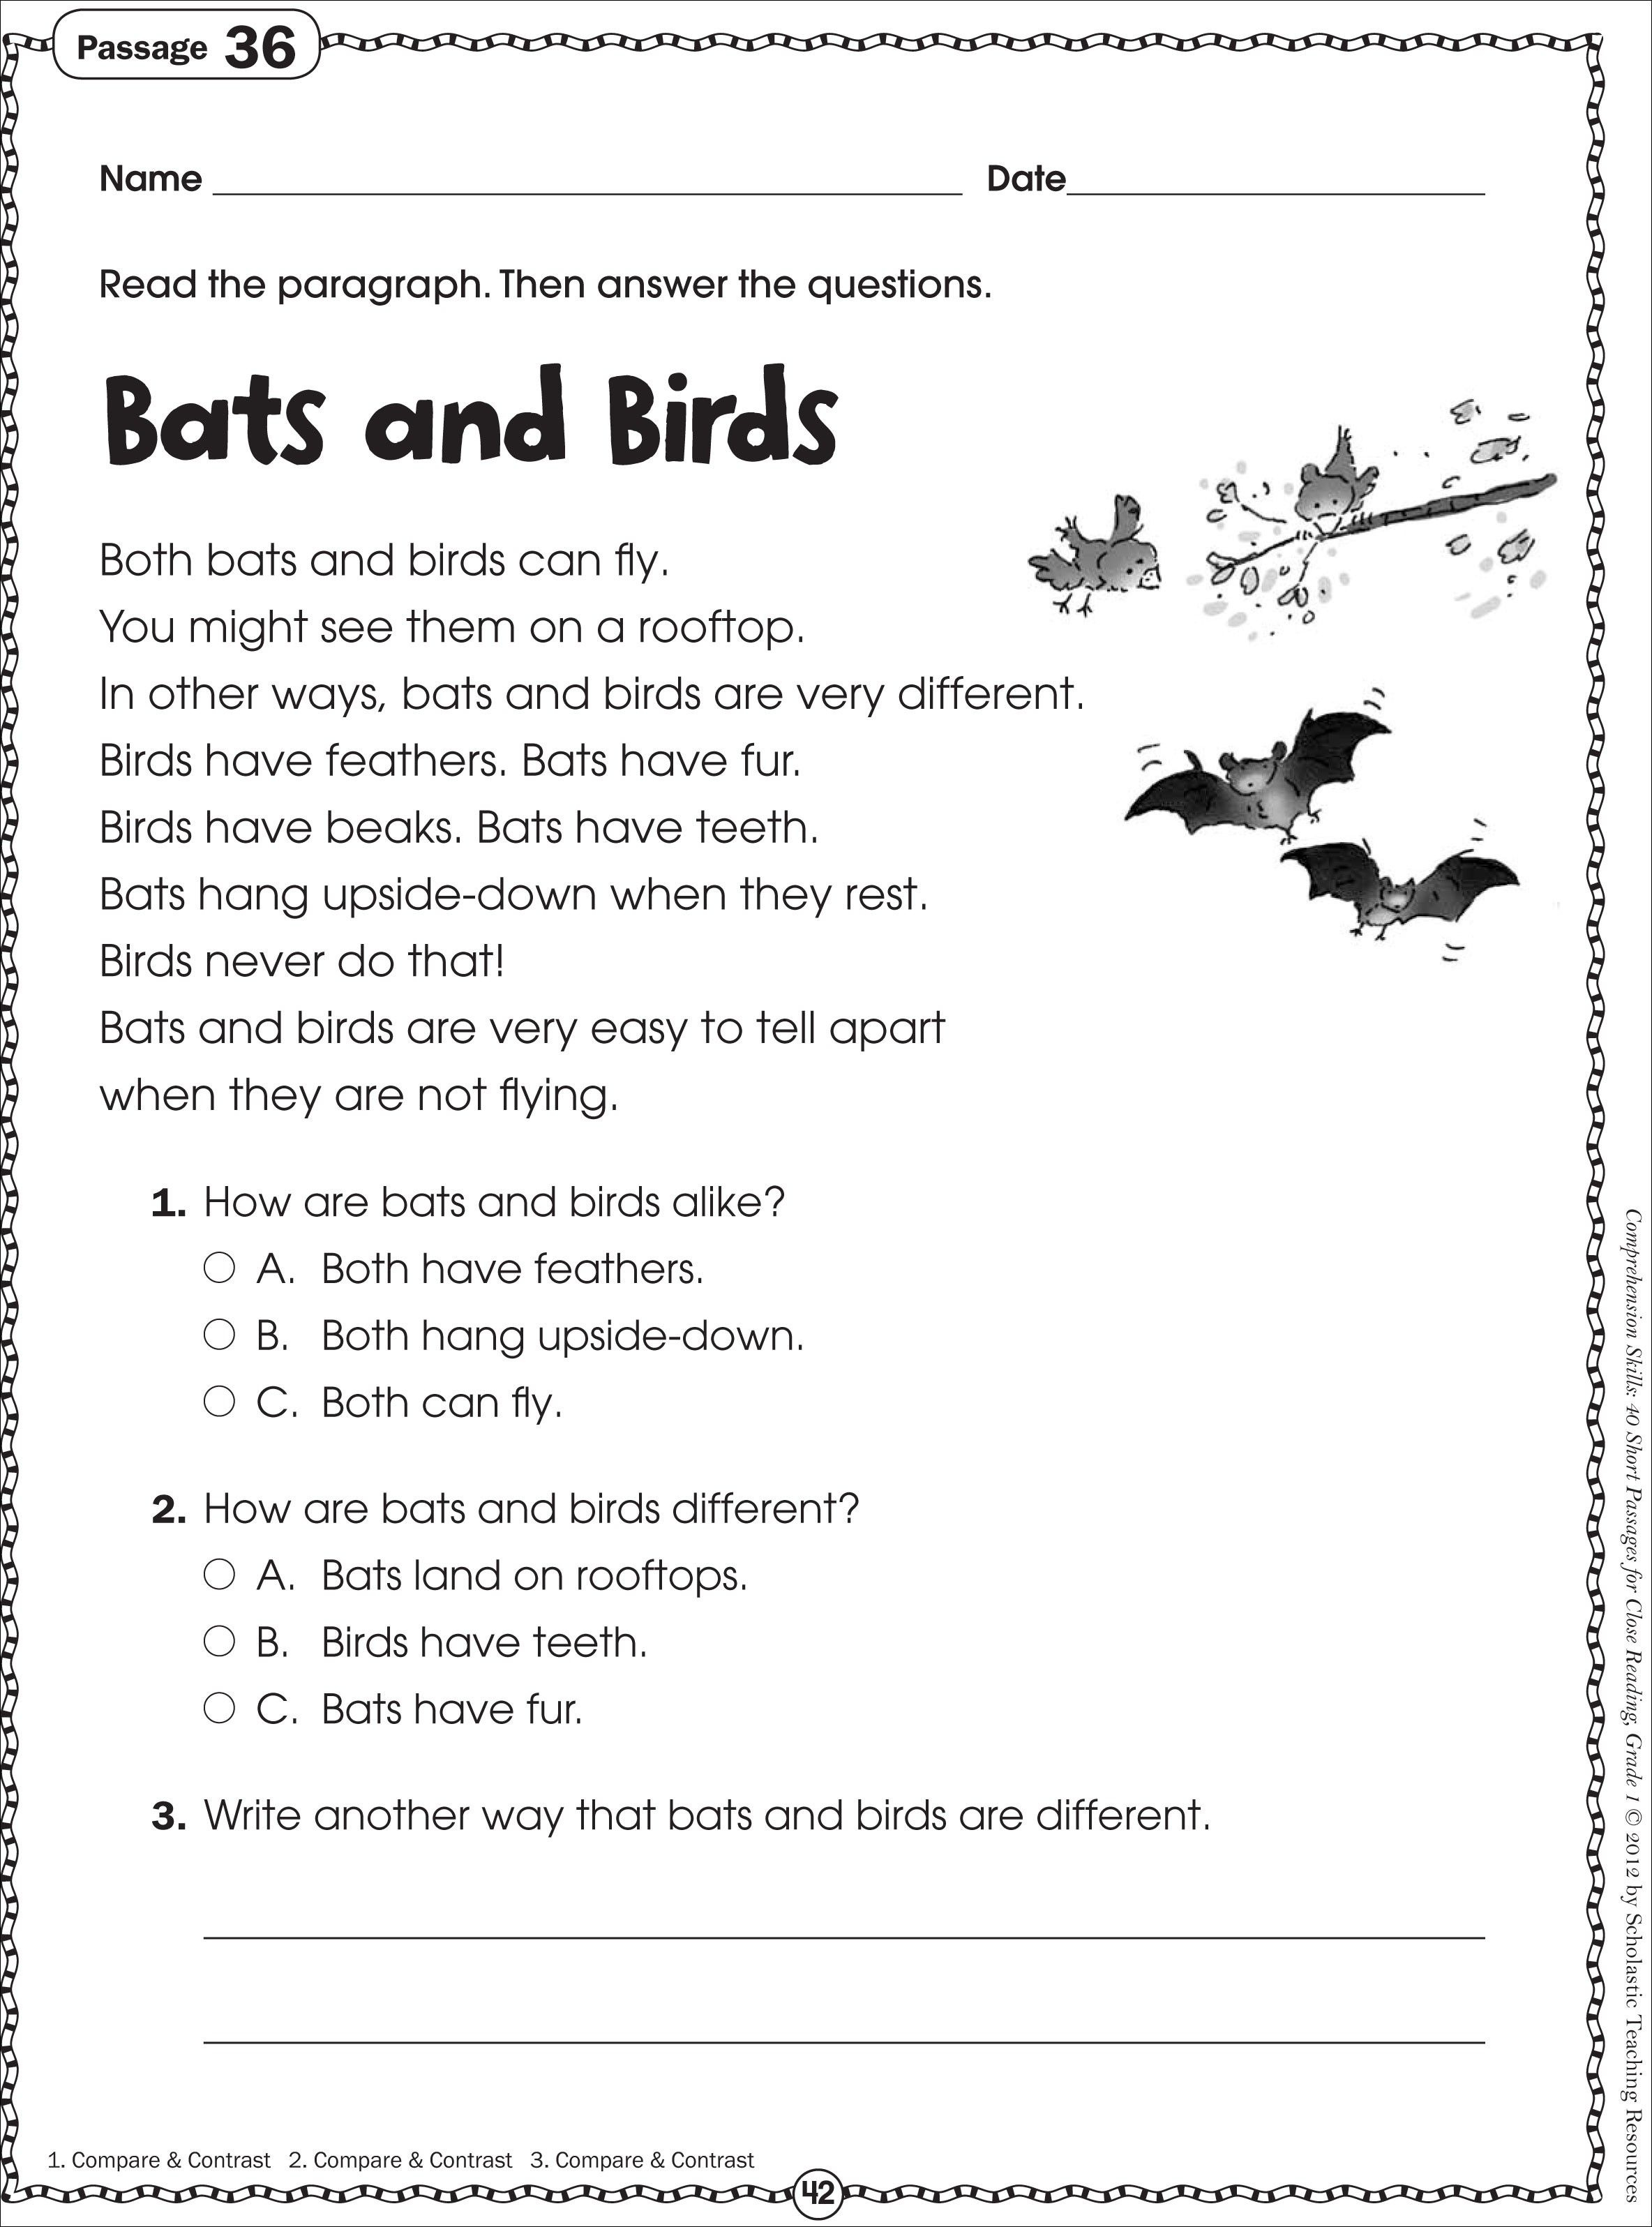 Free Printable Reading Comprehension Worksheets For Kindergarten - Free Printable Reading Worksheets For 5Th Grade